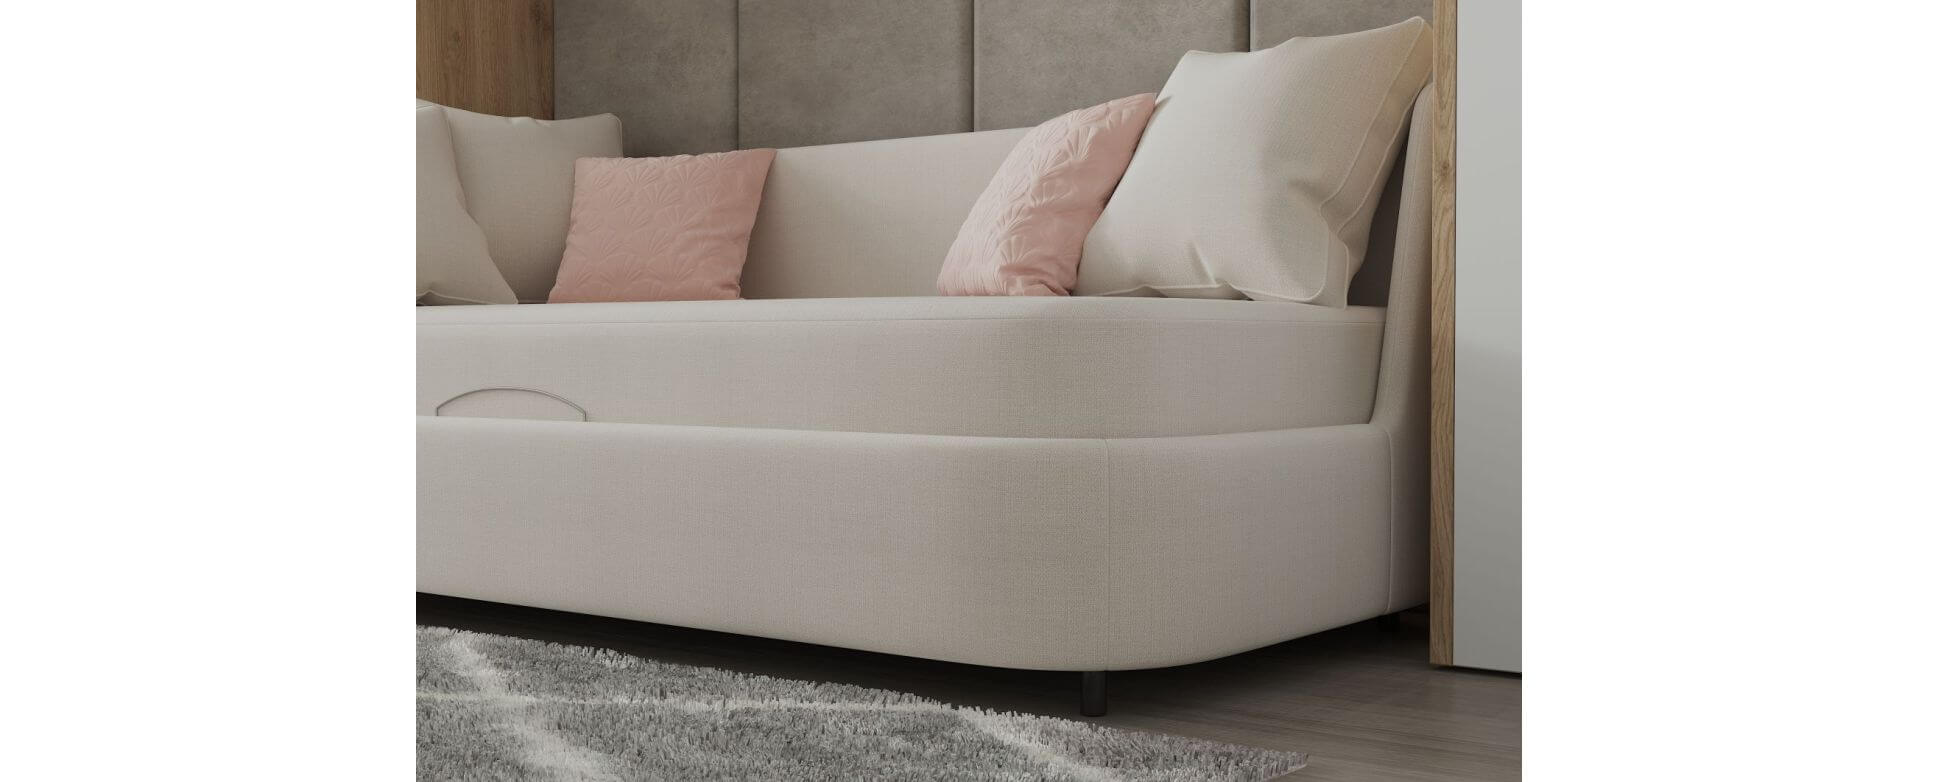 sofa bed for children kd761 plus